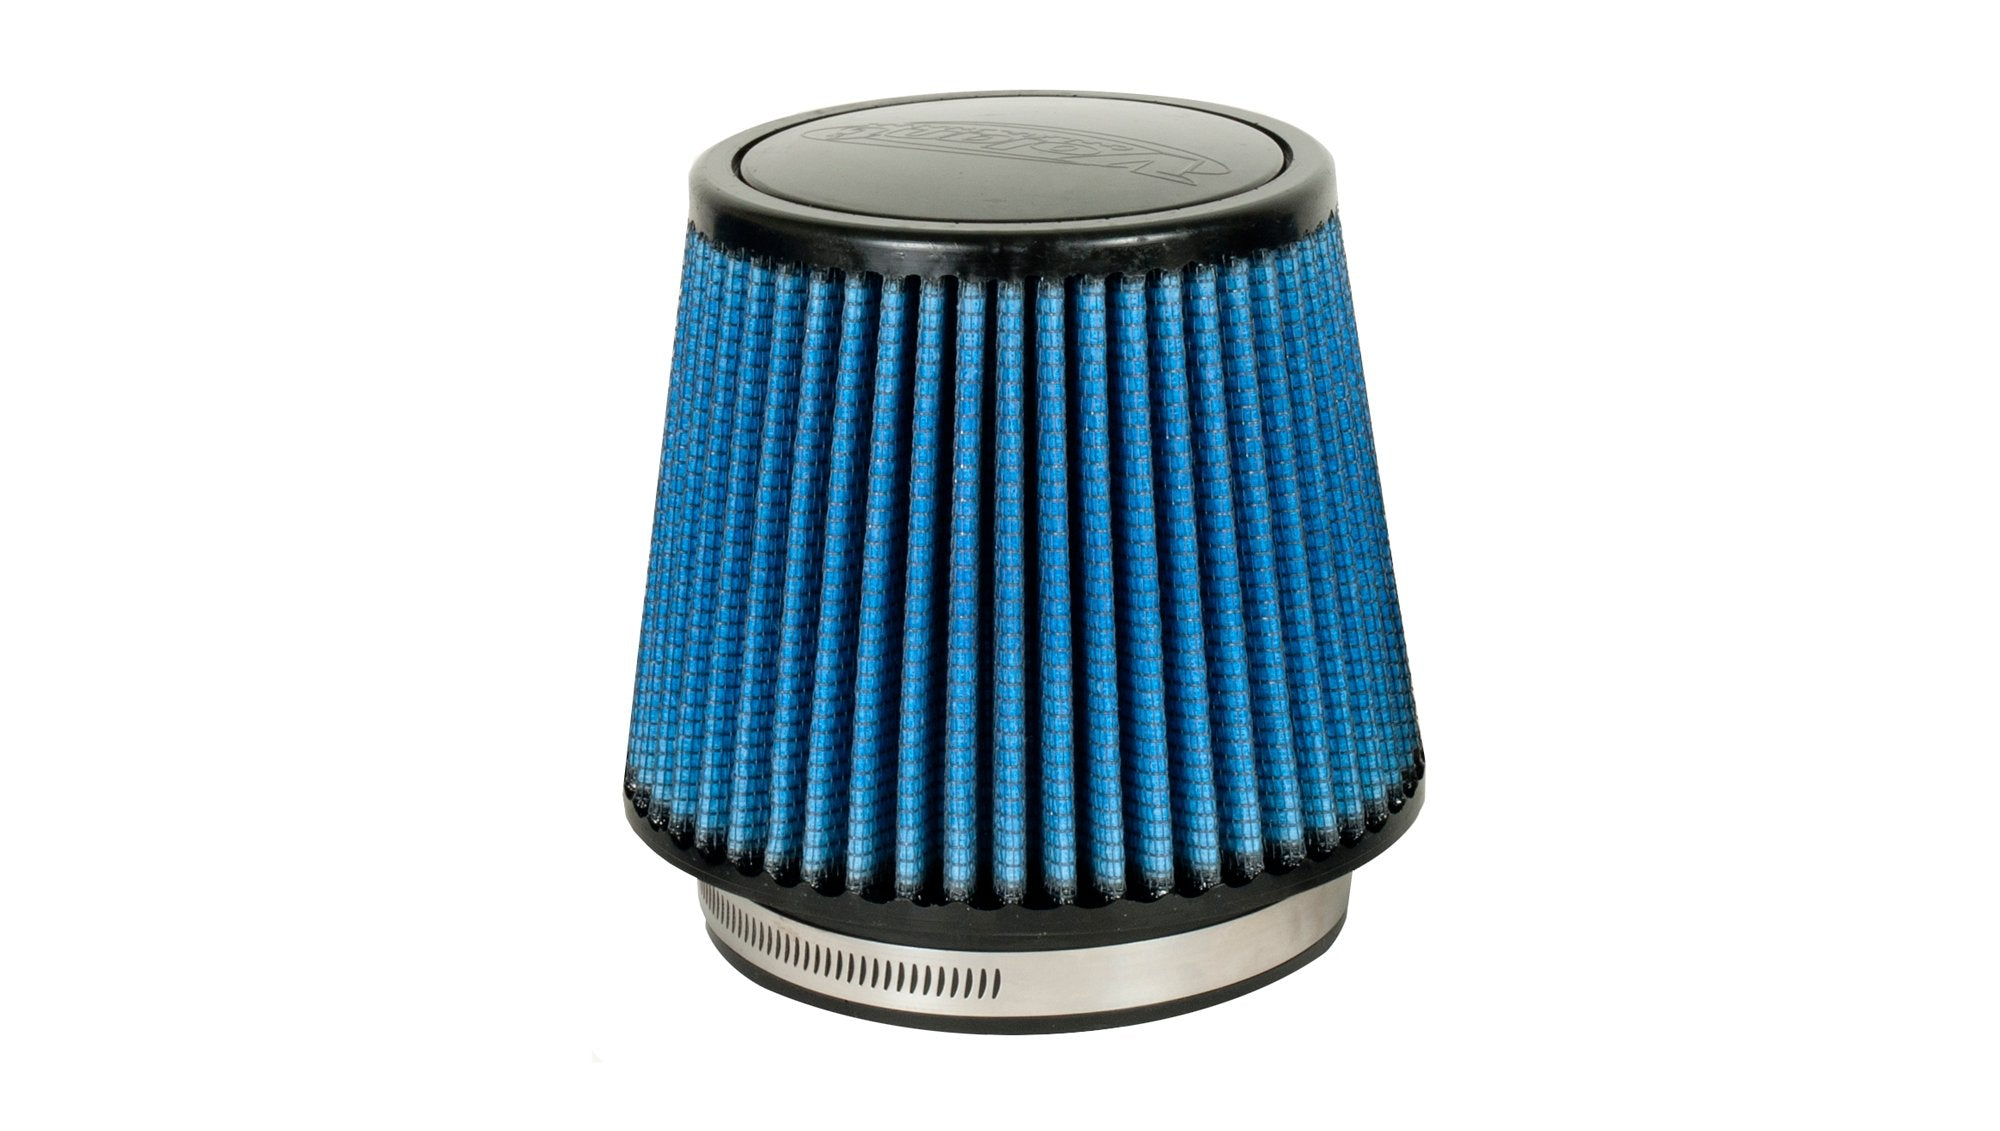 MaxFlow Oiled Air Filter (5121) Replacement Air Filter [OBSOLETE]